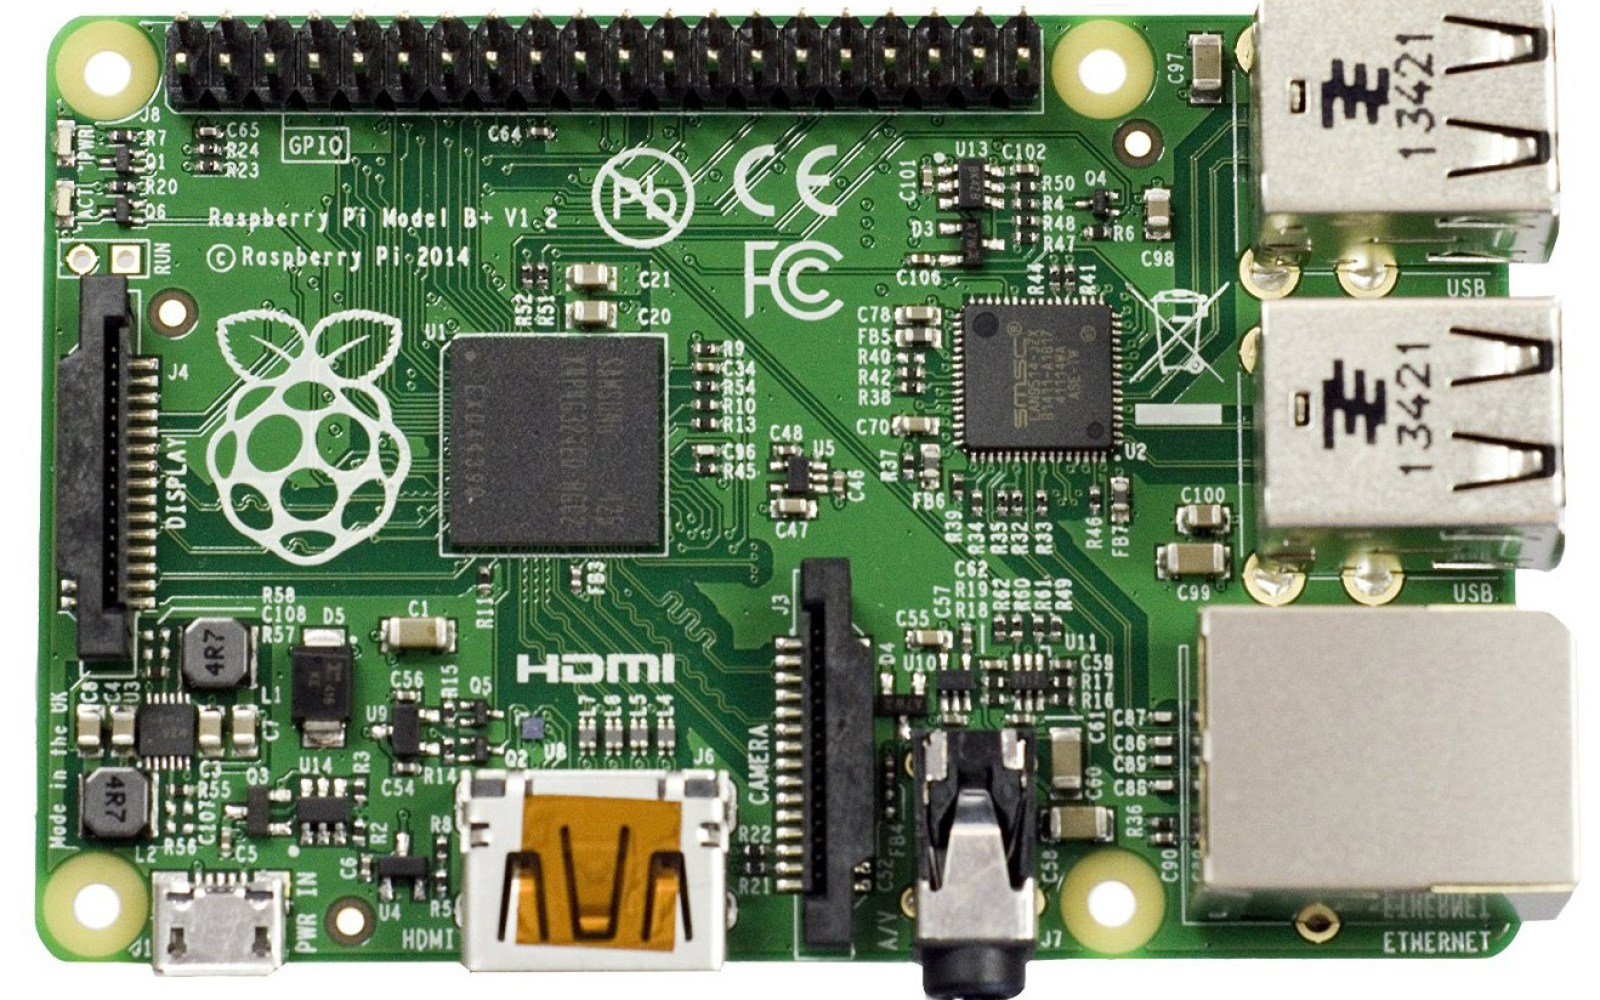 Raspberry Pi Model B+ gets an official price drop down to $25